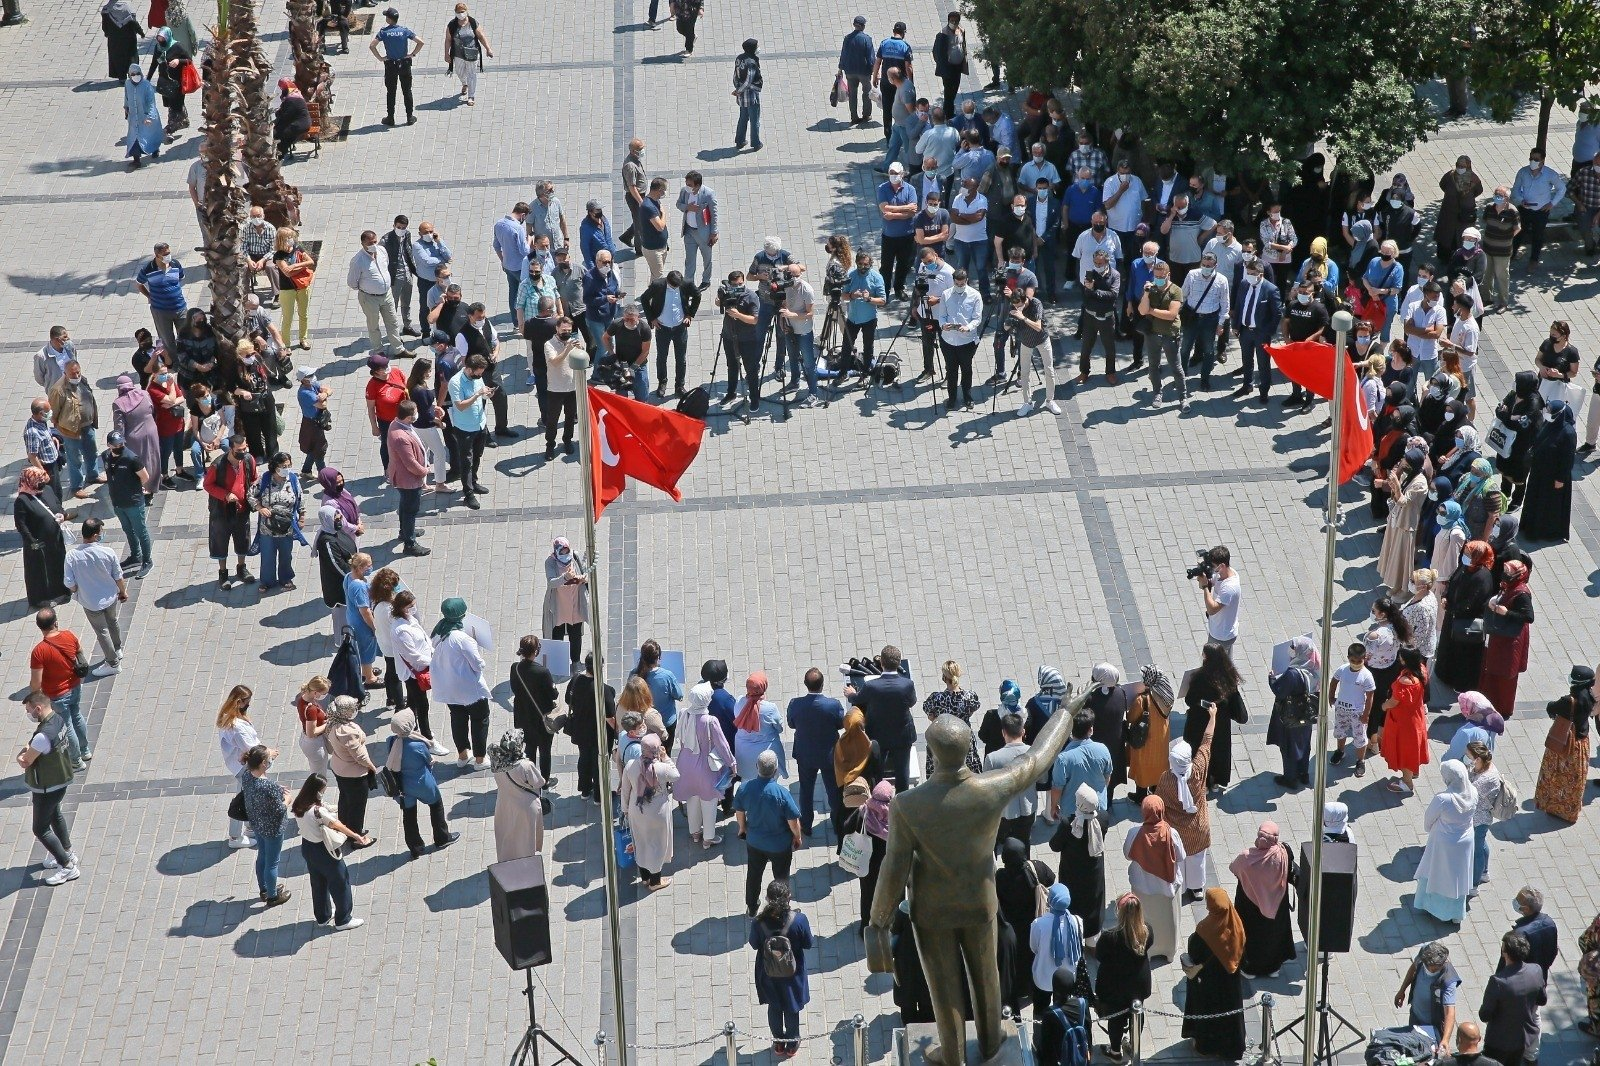 People stage a protest against the attack, in Istanbul, Turkey, June 9, 2021. (İHA PHOTO)